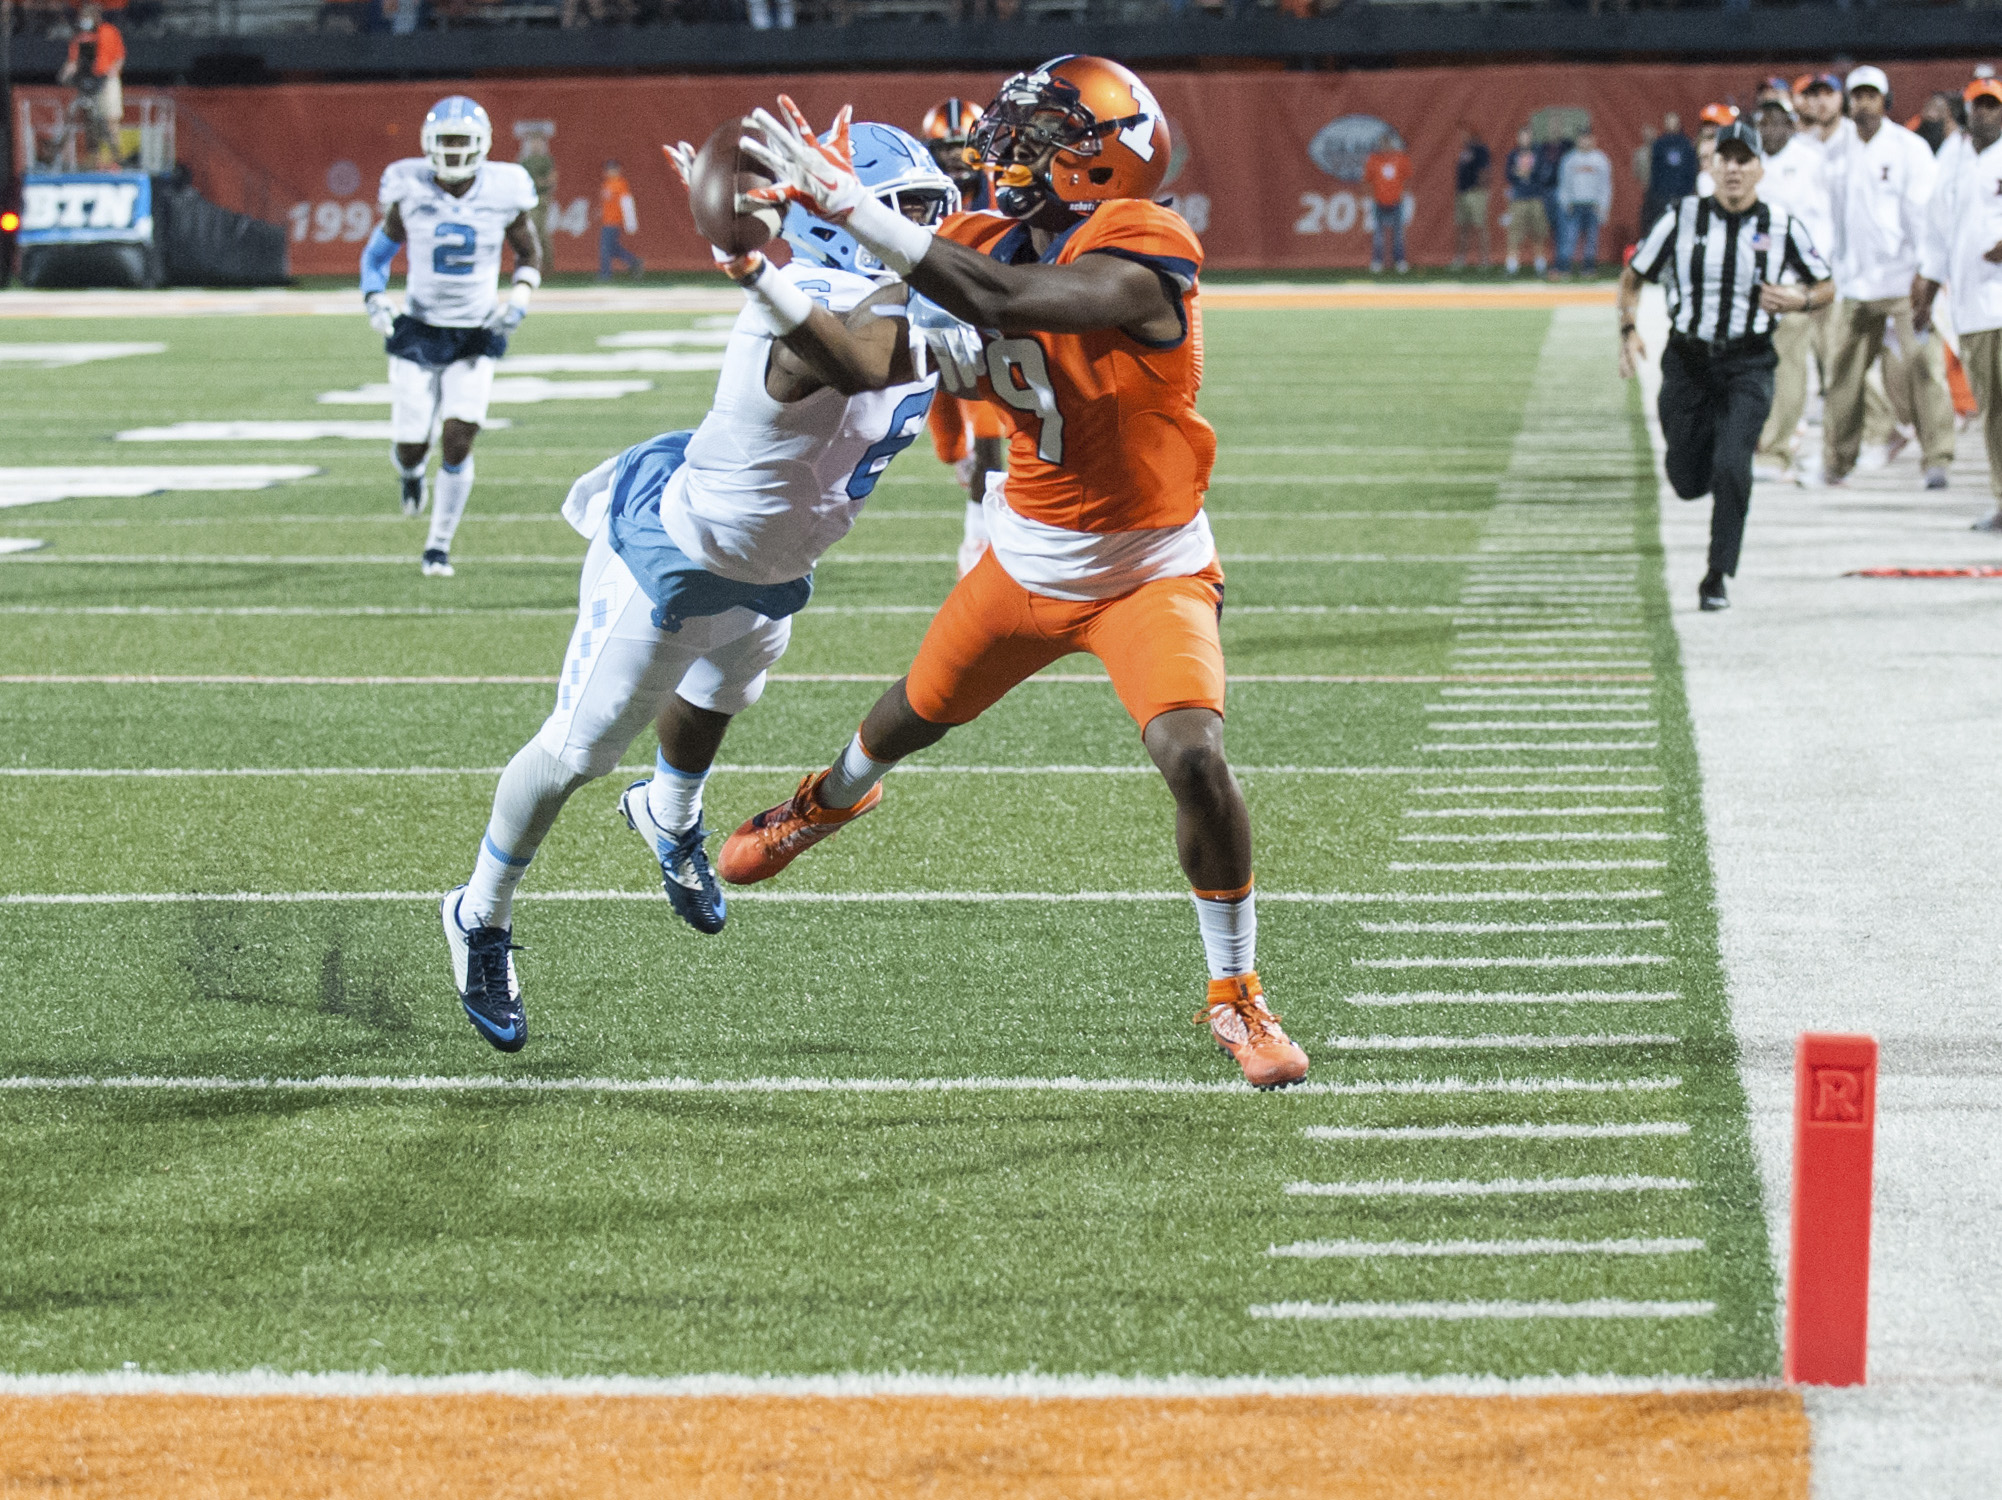 Illinois wide receiver Sam Mays (9) has a pass broken up by North Carolina cornerback M.J. Stewart (6) during the second half of an NCAA college football game Saturday, Sept. 10, 2016 at Memorial Stadium in Champaign, Ill.  (AP Photo/Bradley Leeb)